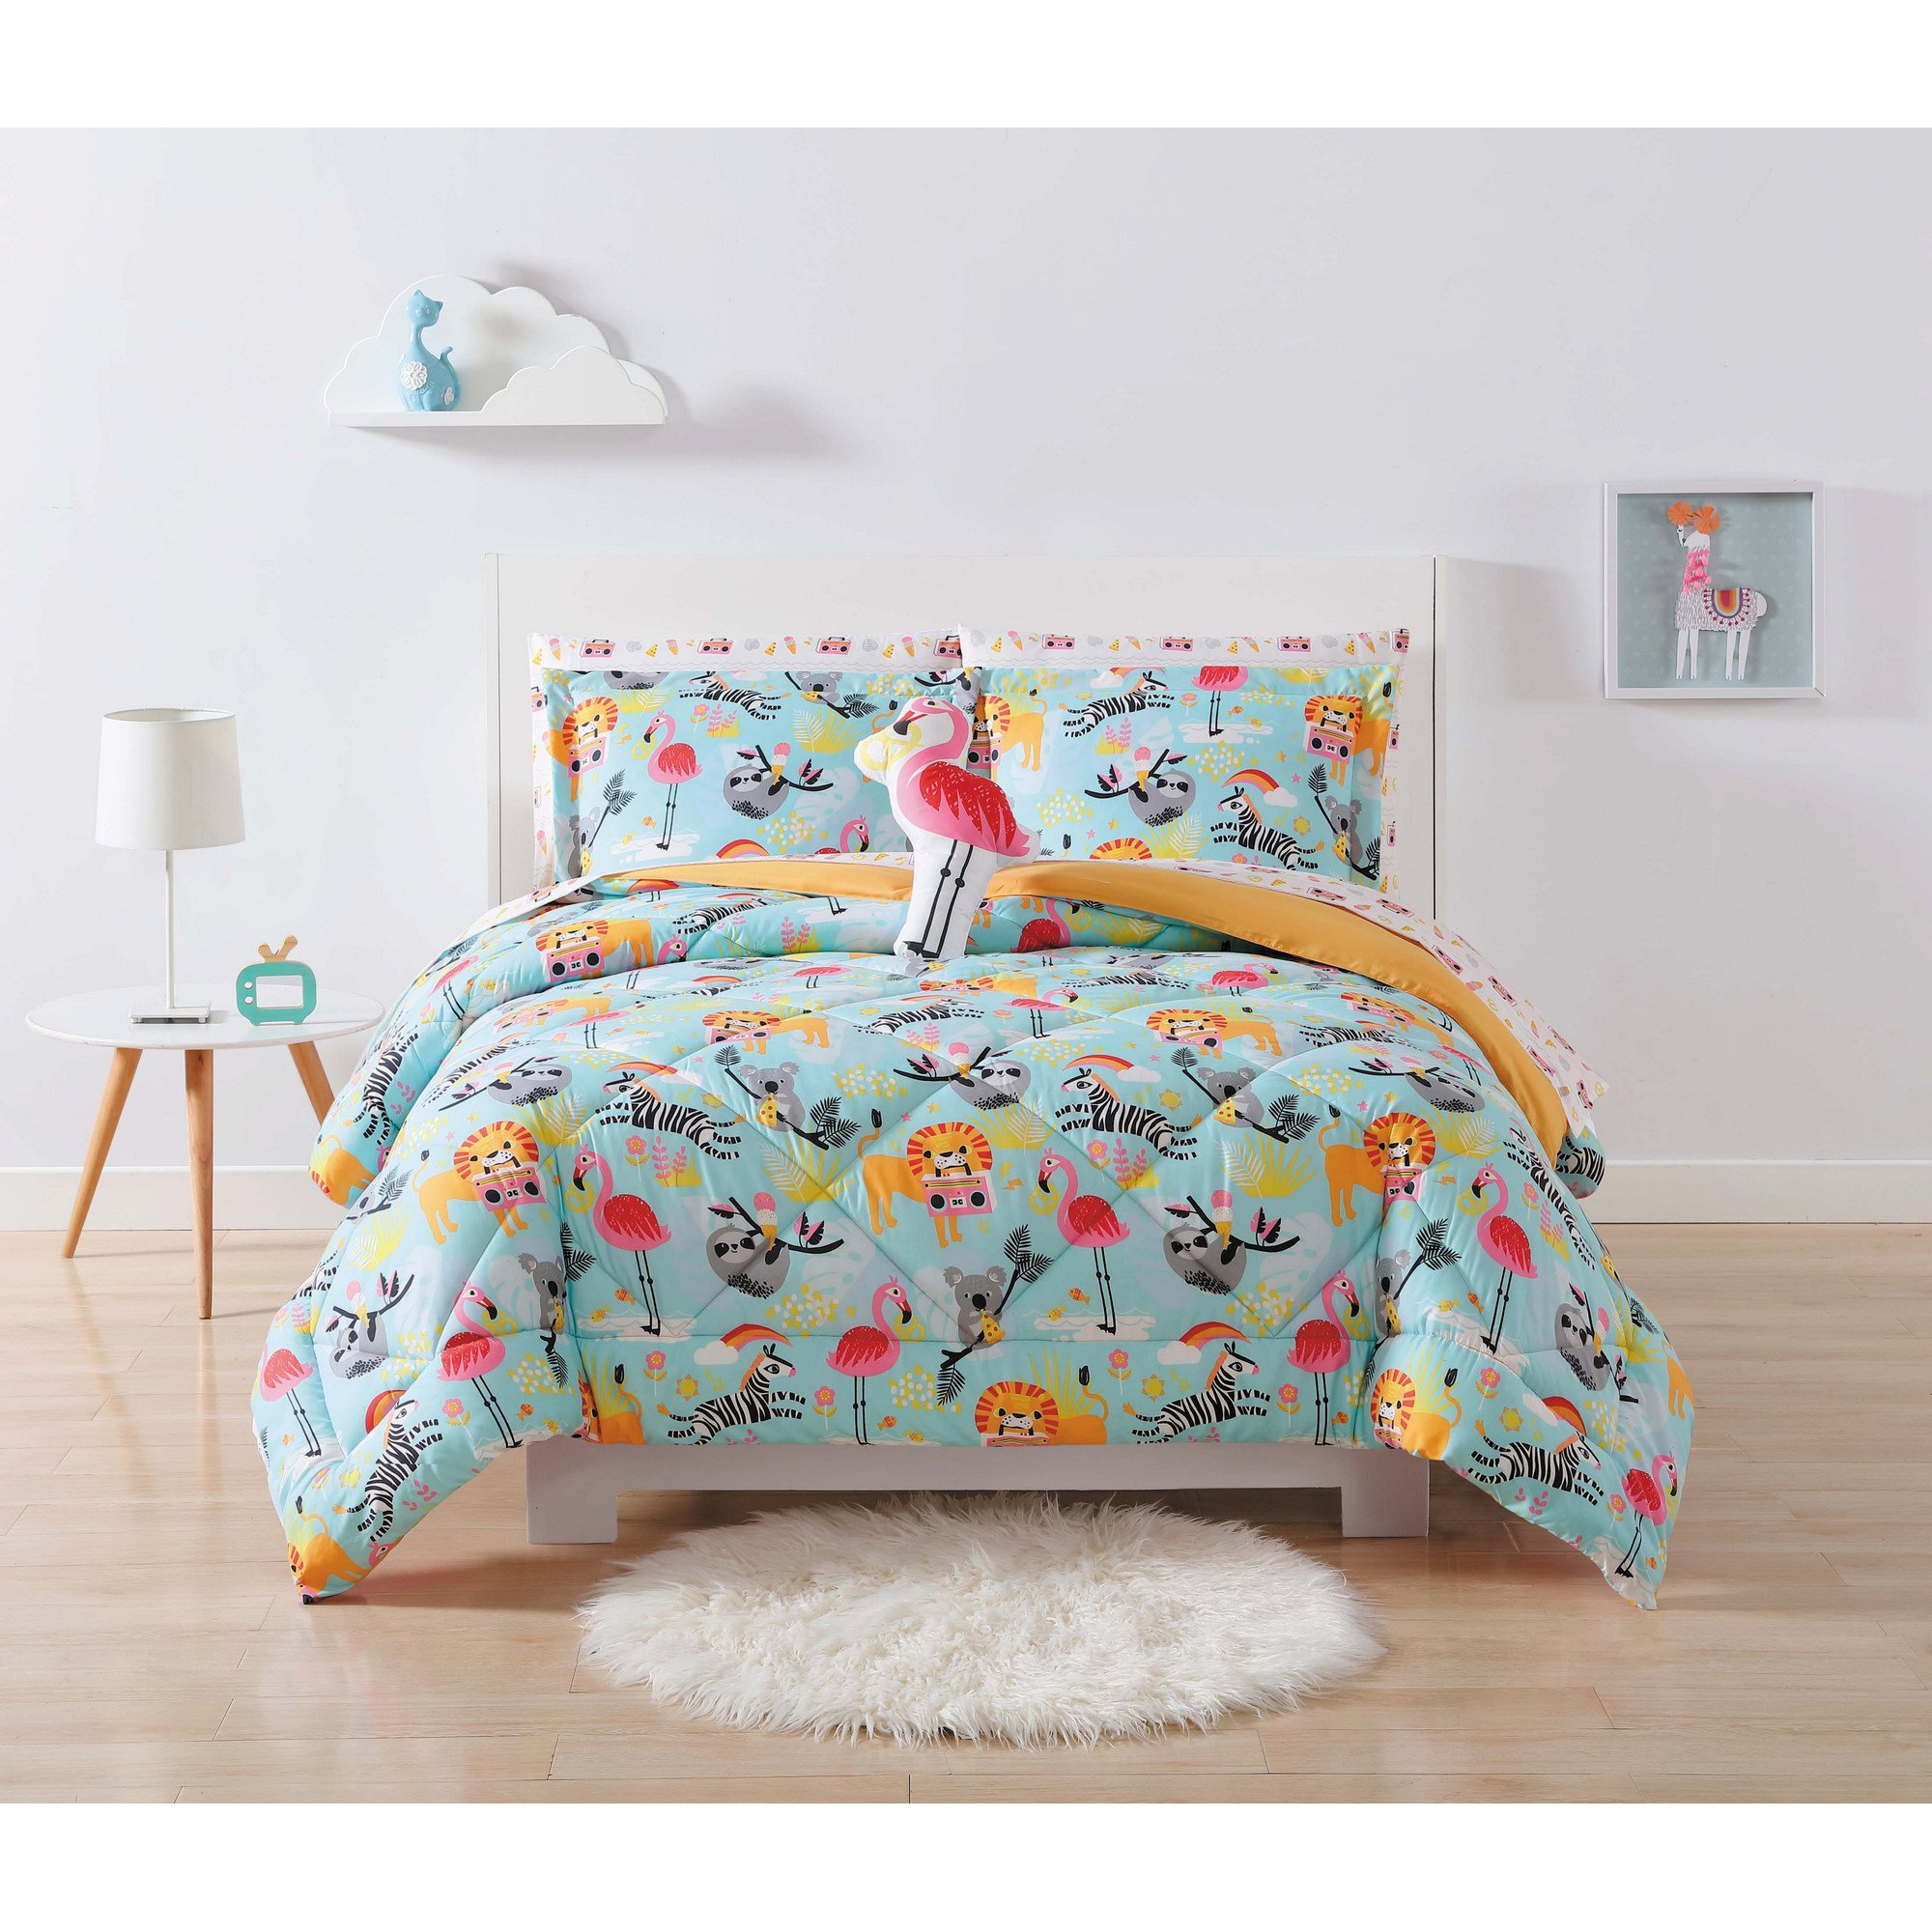 Laura Hart Kids Comforter Set, Full/Queen, Party Animals